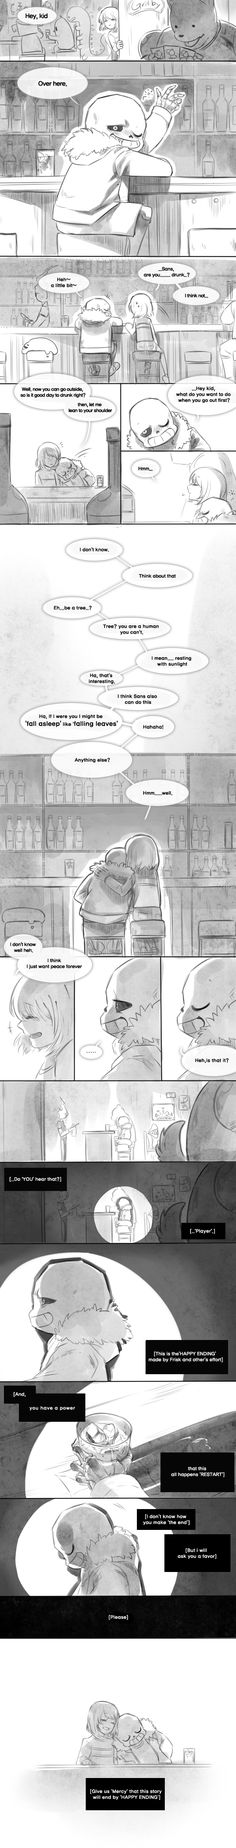 Sans and Frisk Undertale - comic Sans X Frisk, Undertale Undertale, Undertale Pictures, Toby Fox, Underswap, Bad Timing, Chara, Video Games, Fandoms